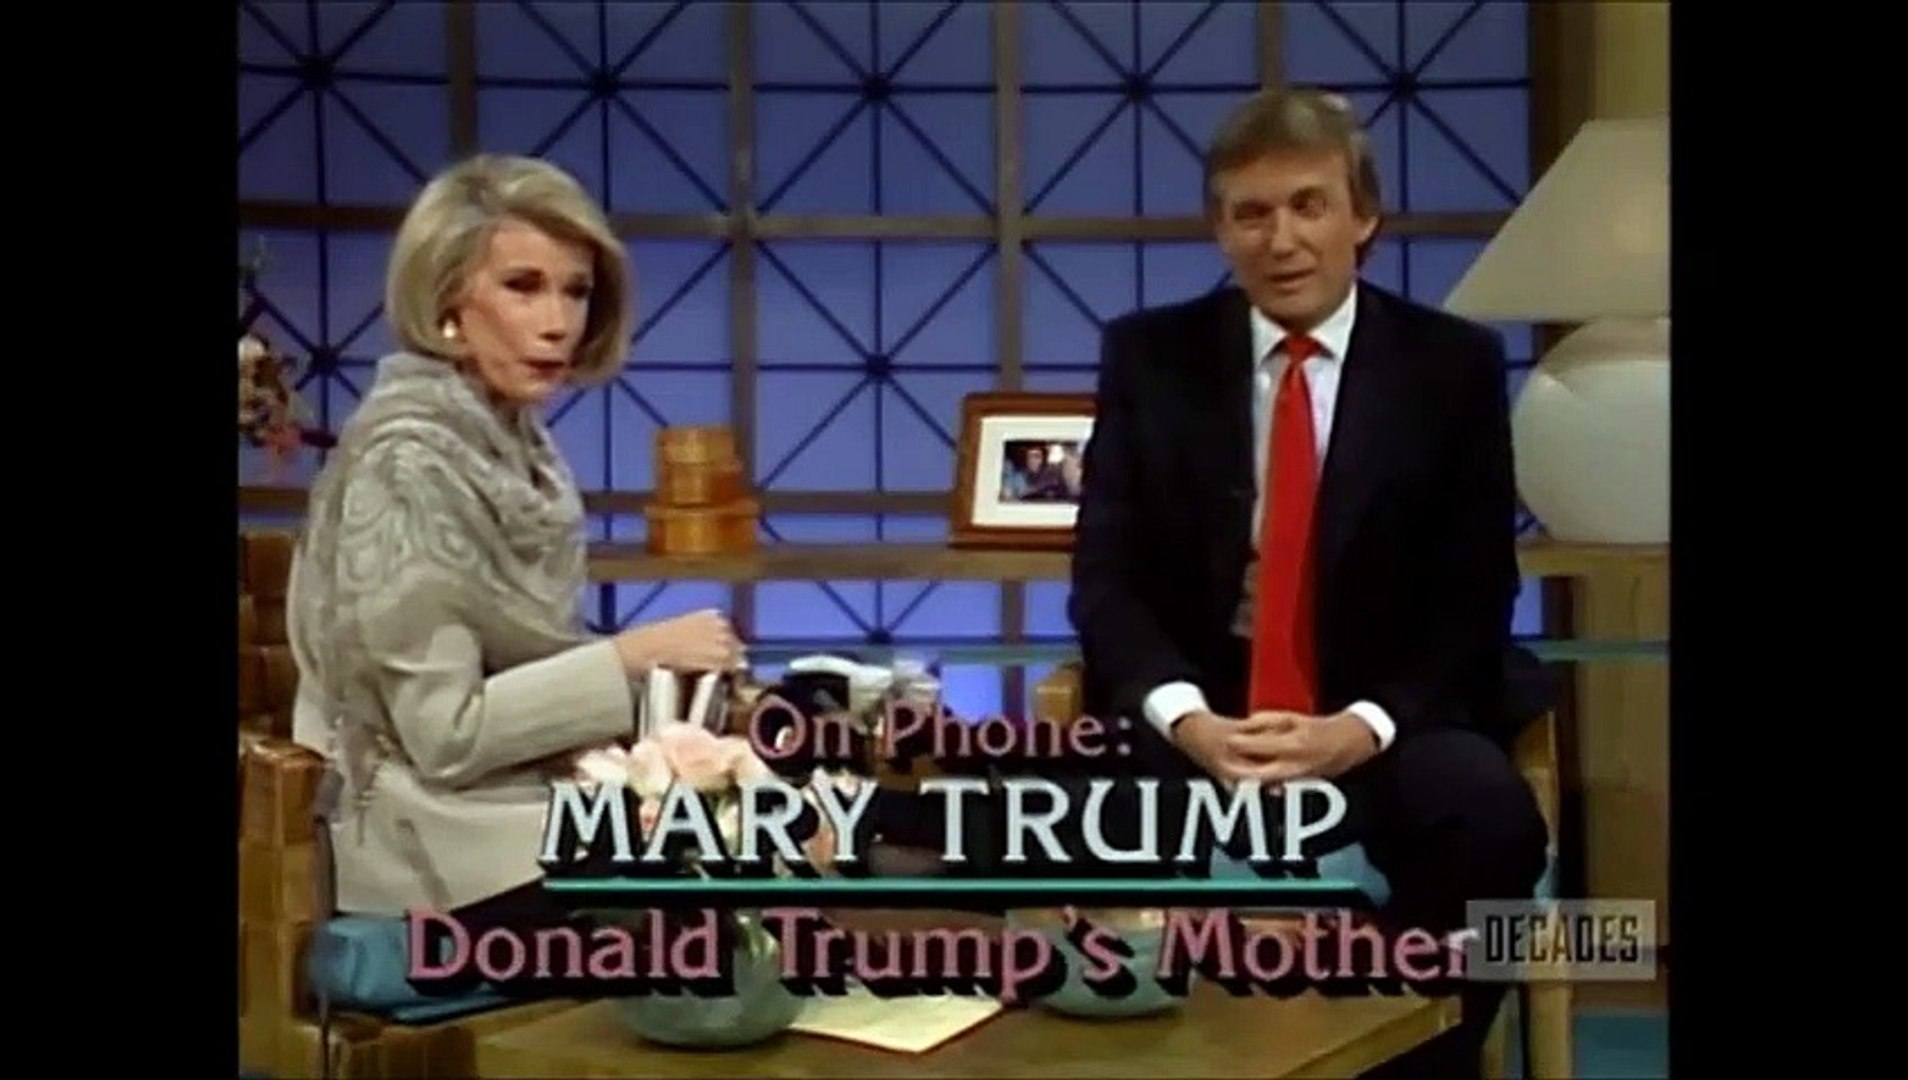 Donald Trump interview (1990)